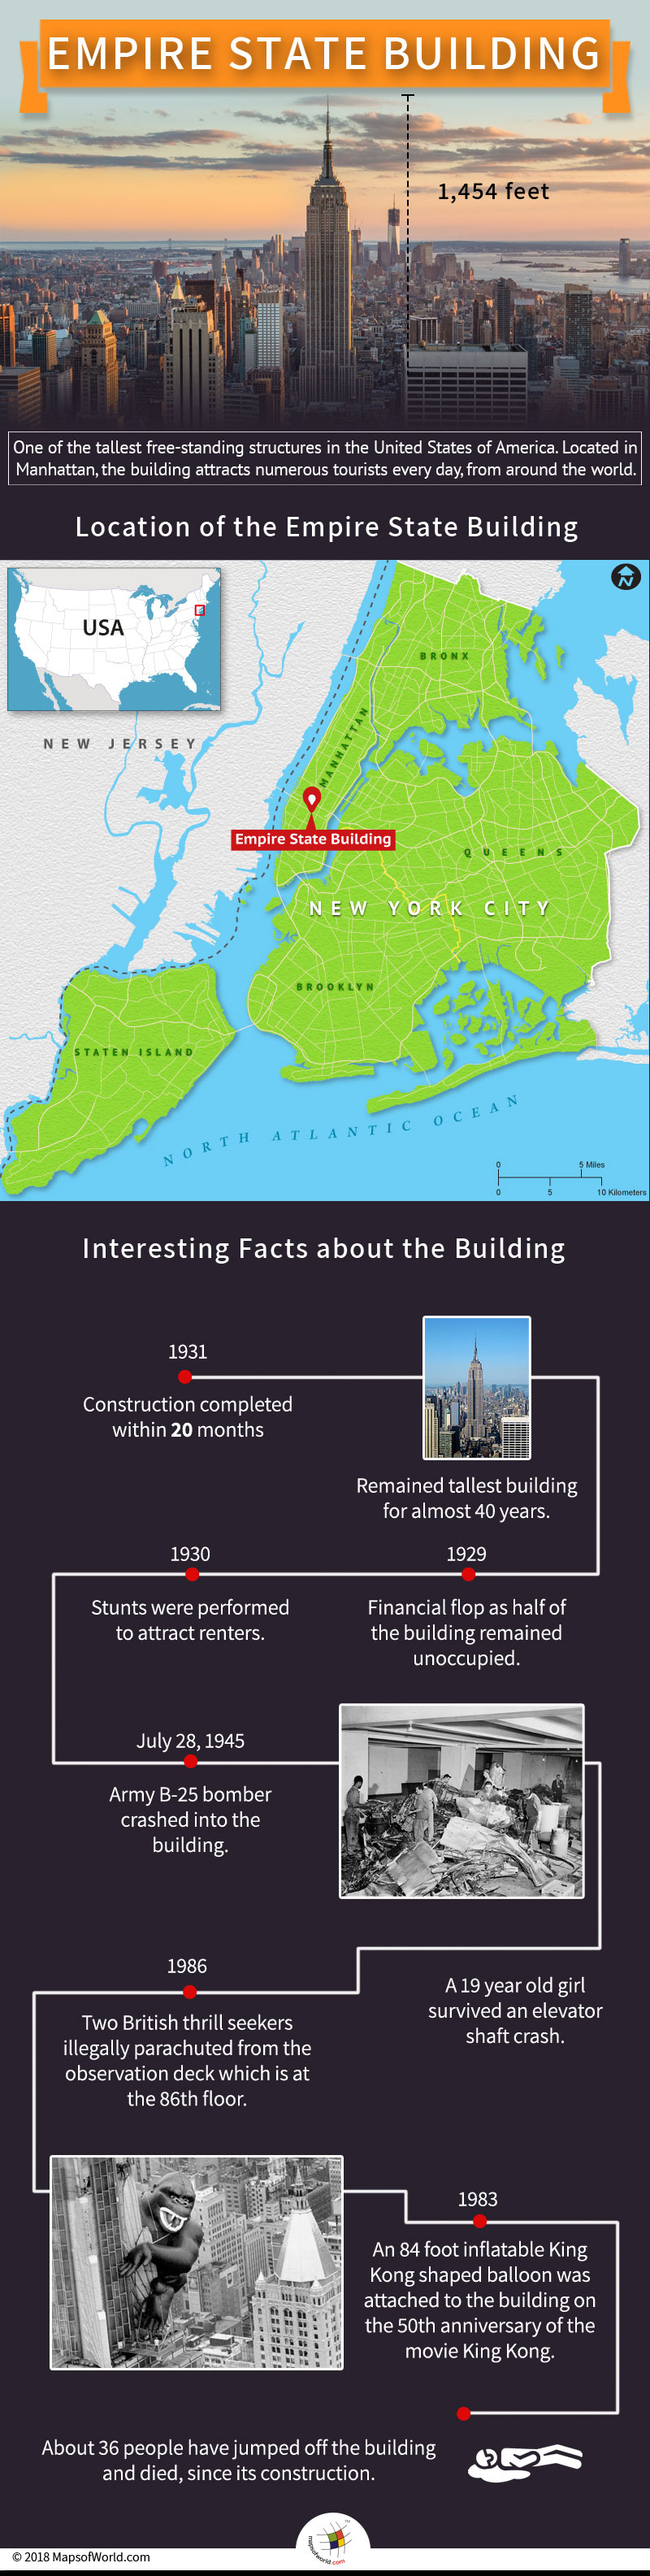 Empire State Building has remained the tallest in New York City for 40 years